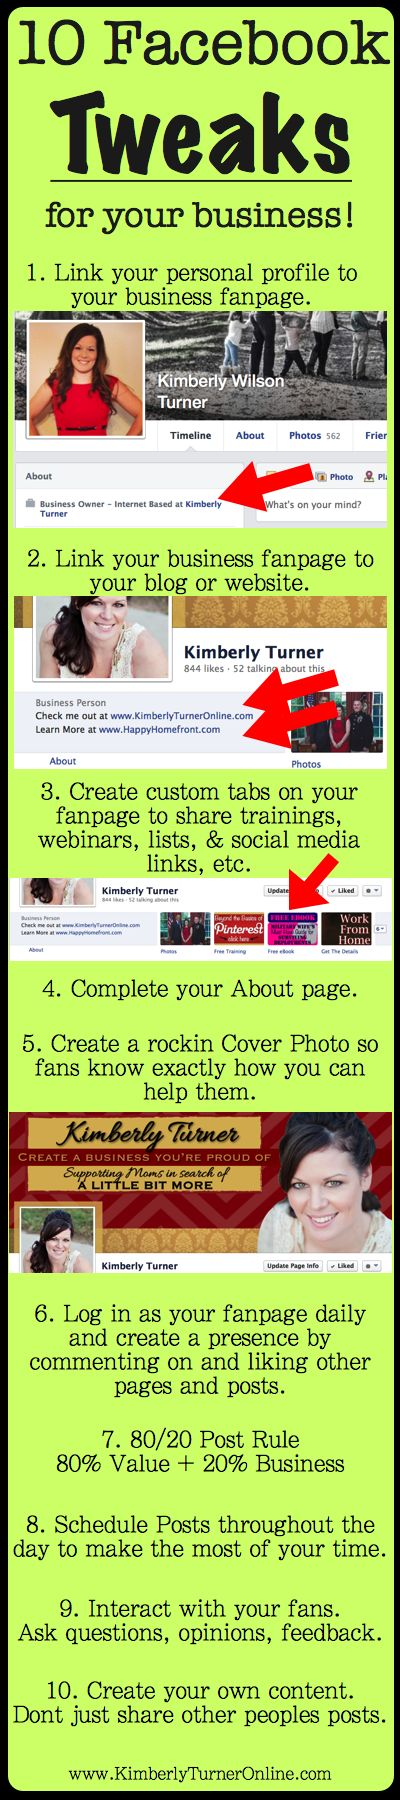 10 Facebook Tweaks for your Business. http://www.serverpoint.com/